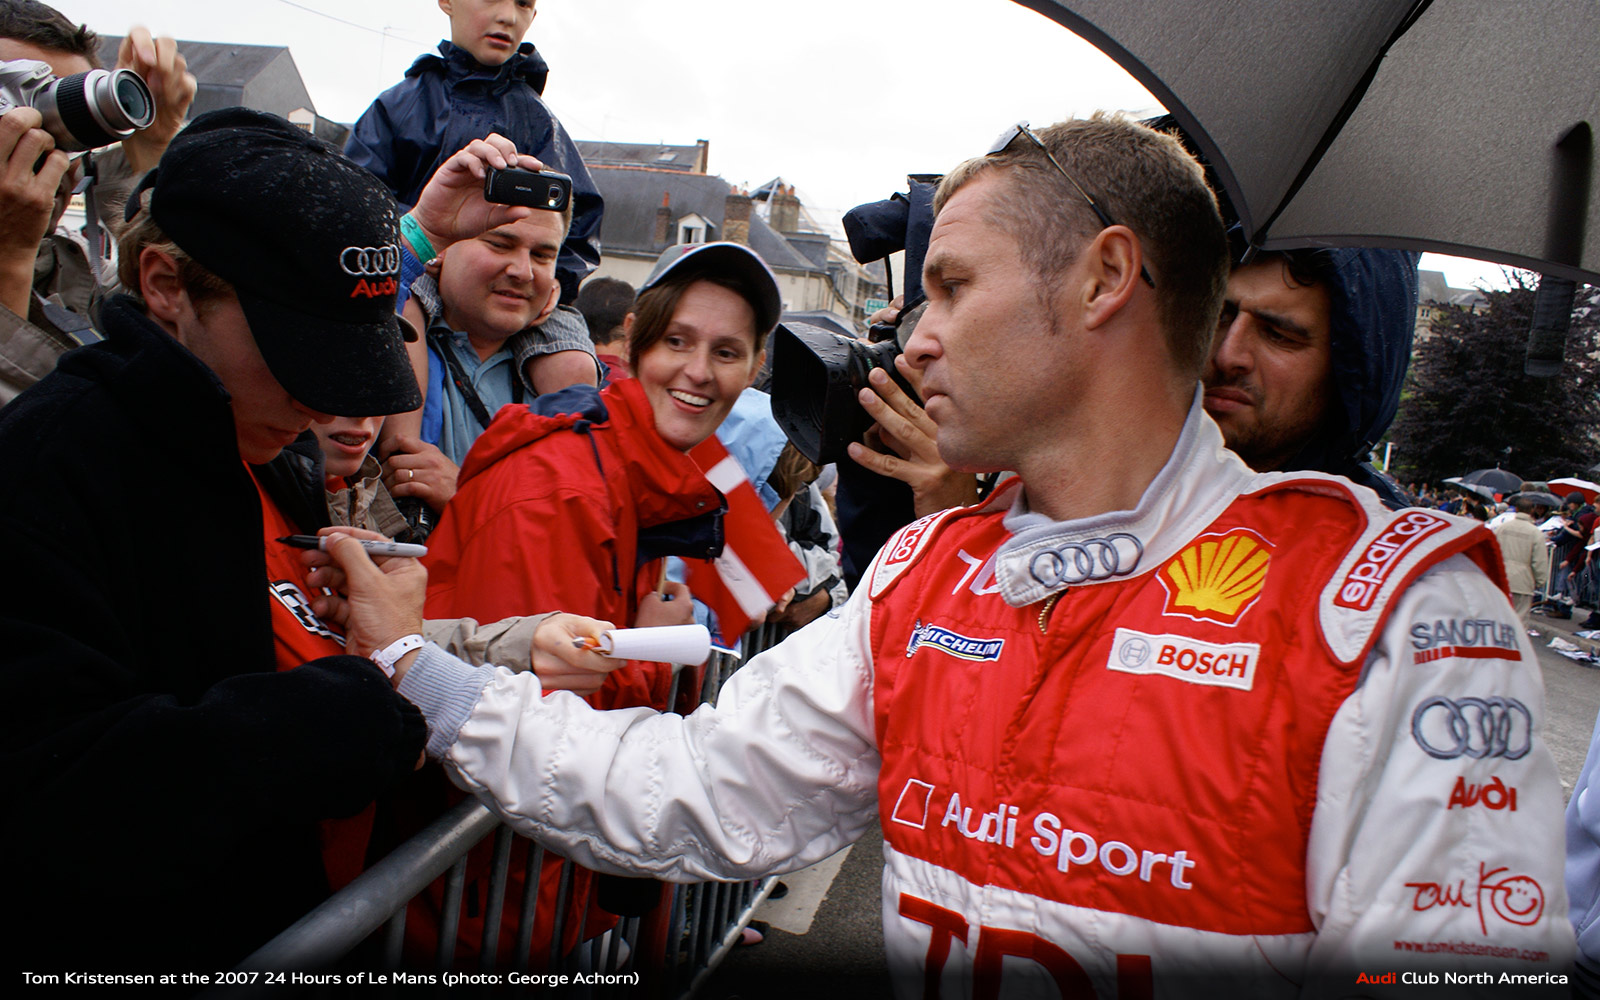 These Are The Photos I Submitted For Tom Kristensen's Book